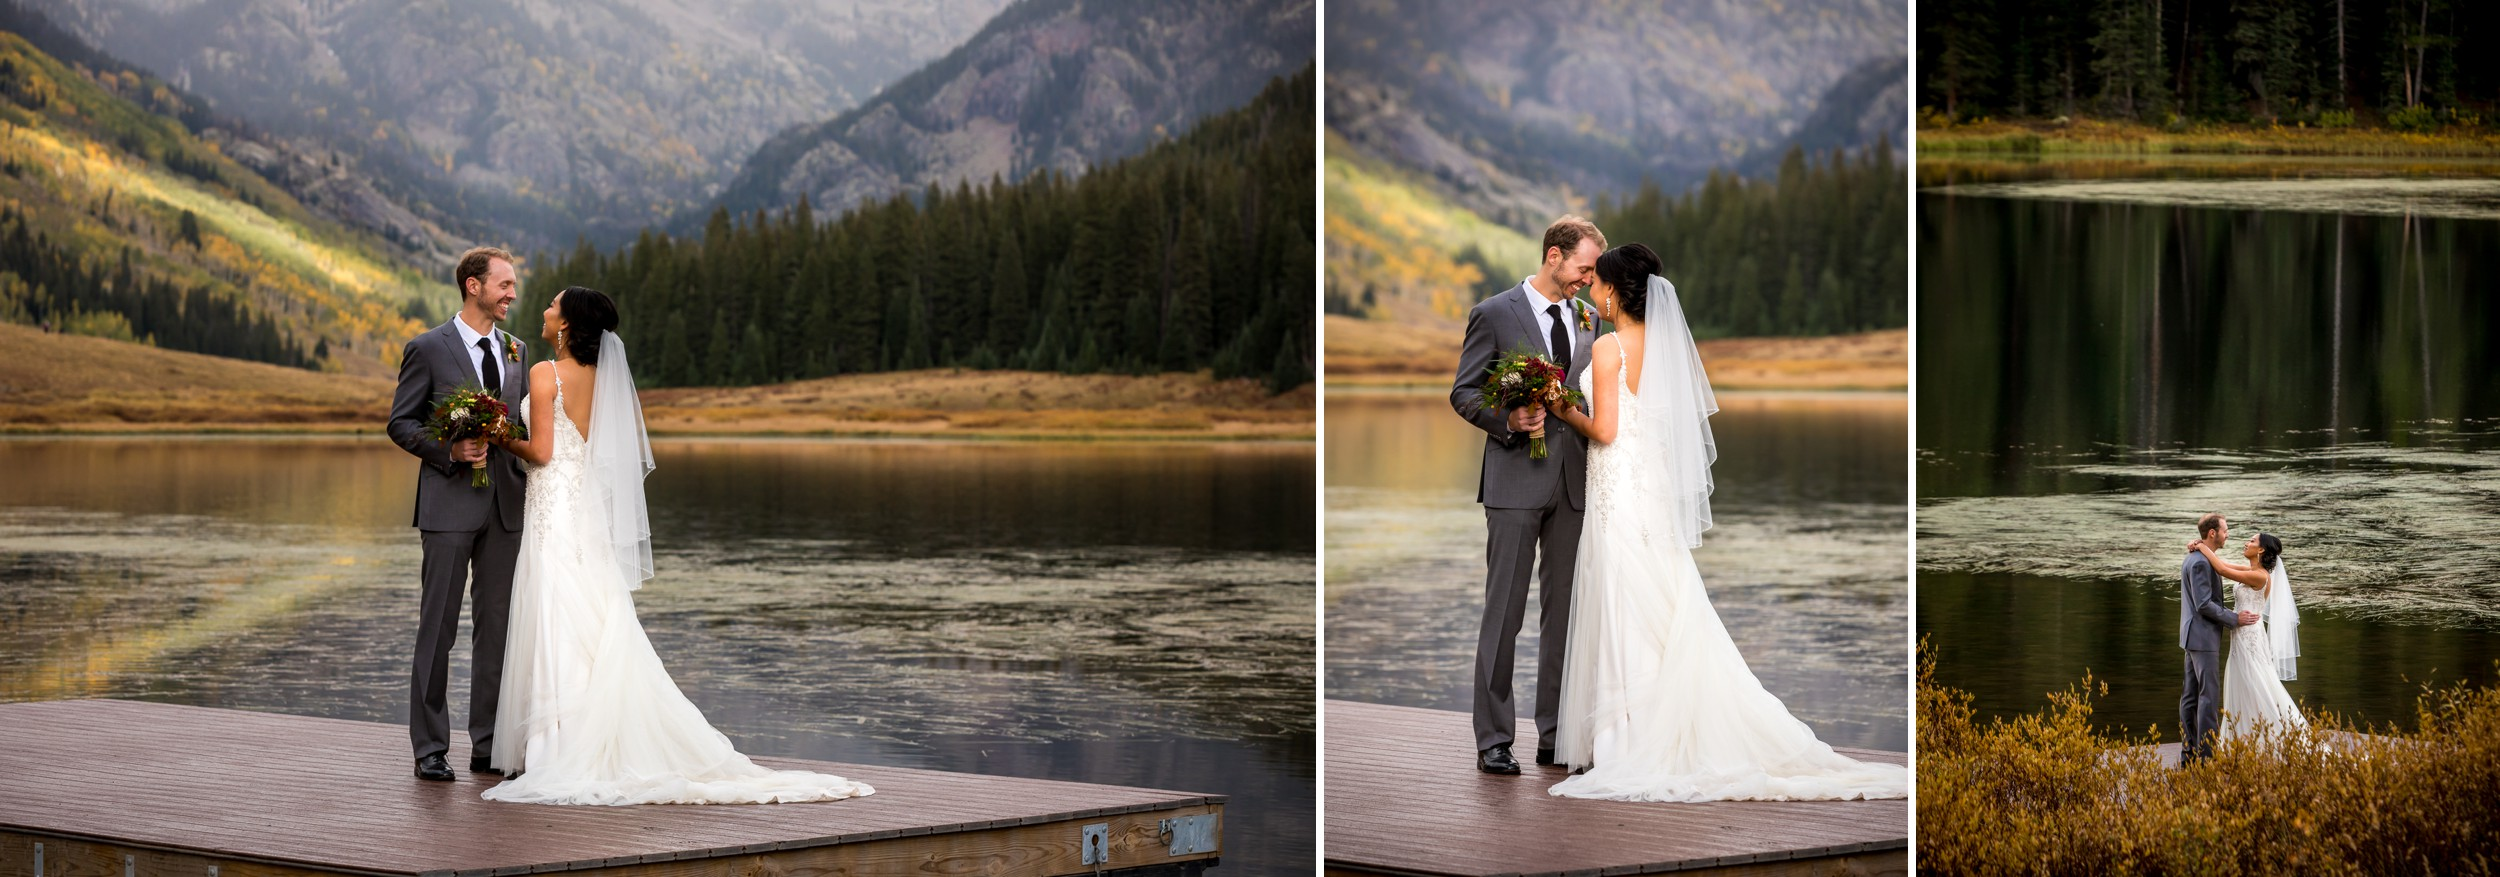 Piney_River_Ranch_Vail_Wedding_Photographer_Kristopher_Lindsay_ 15.jpg